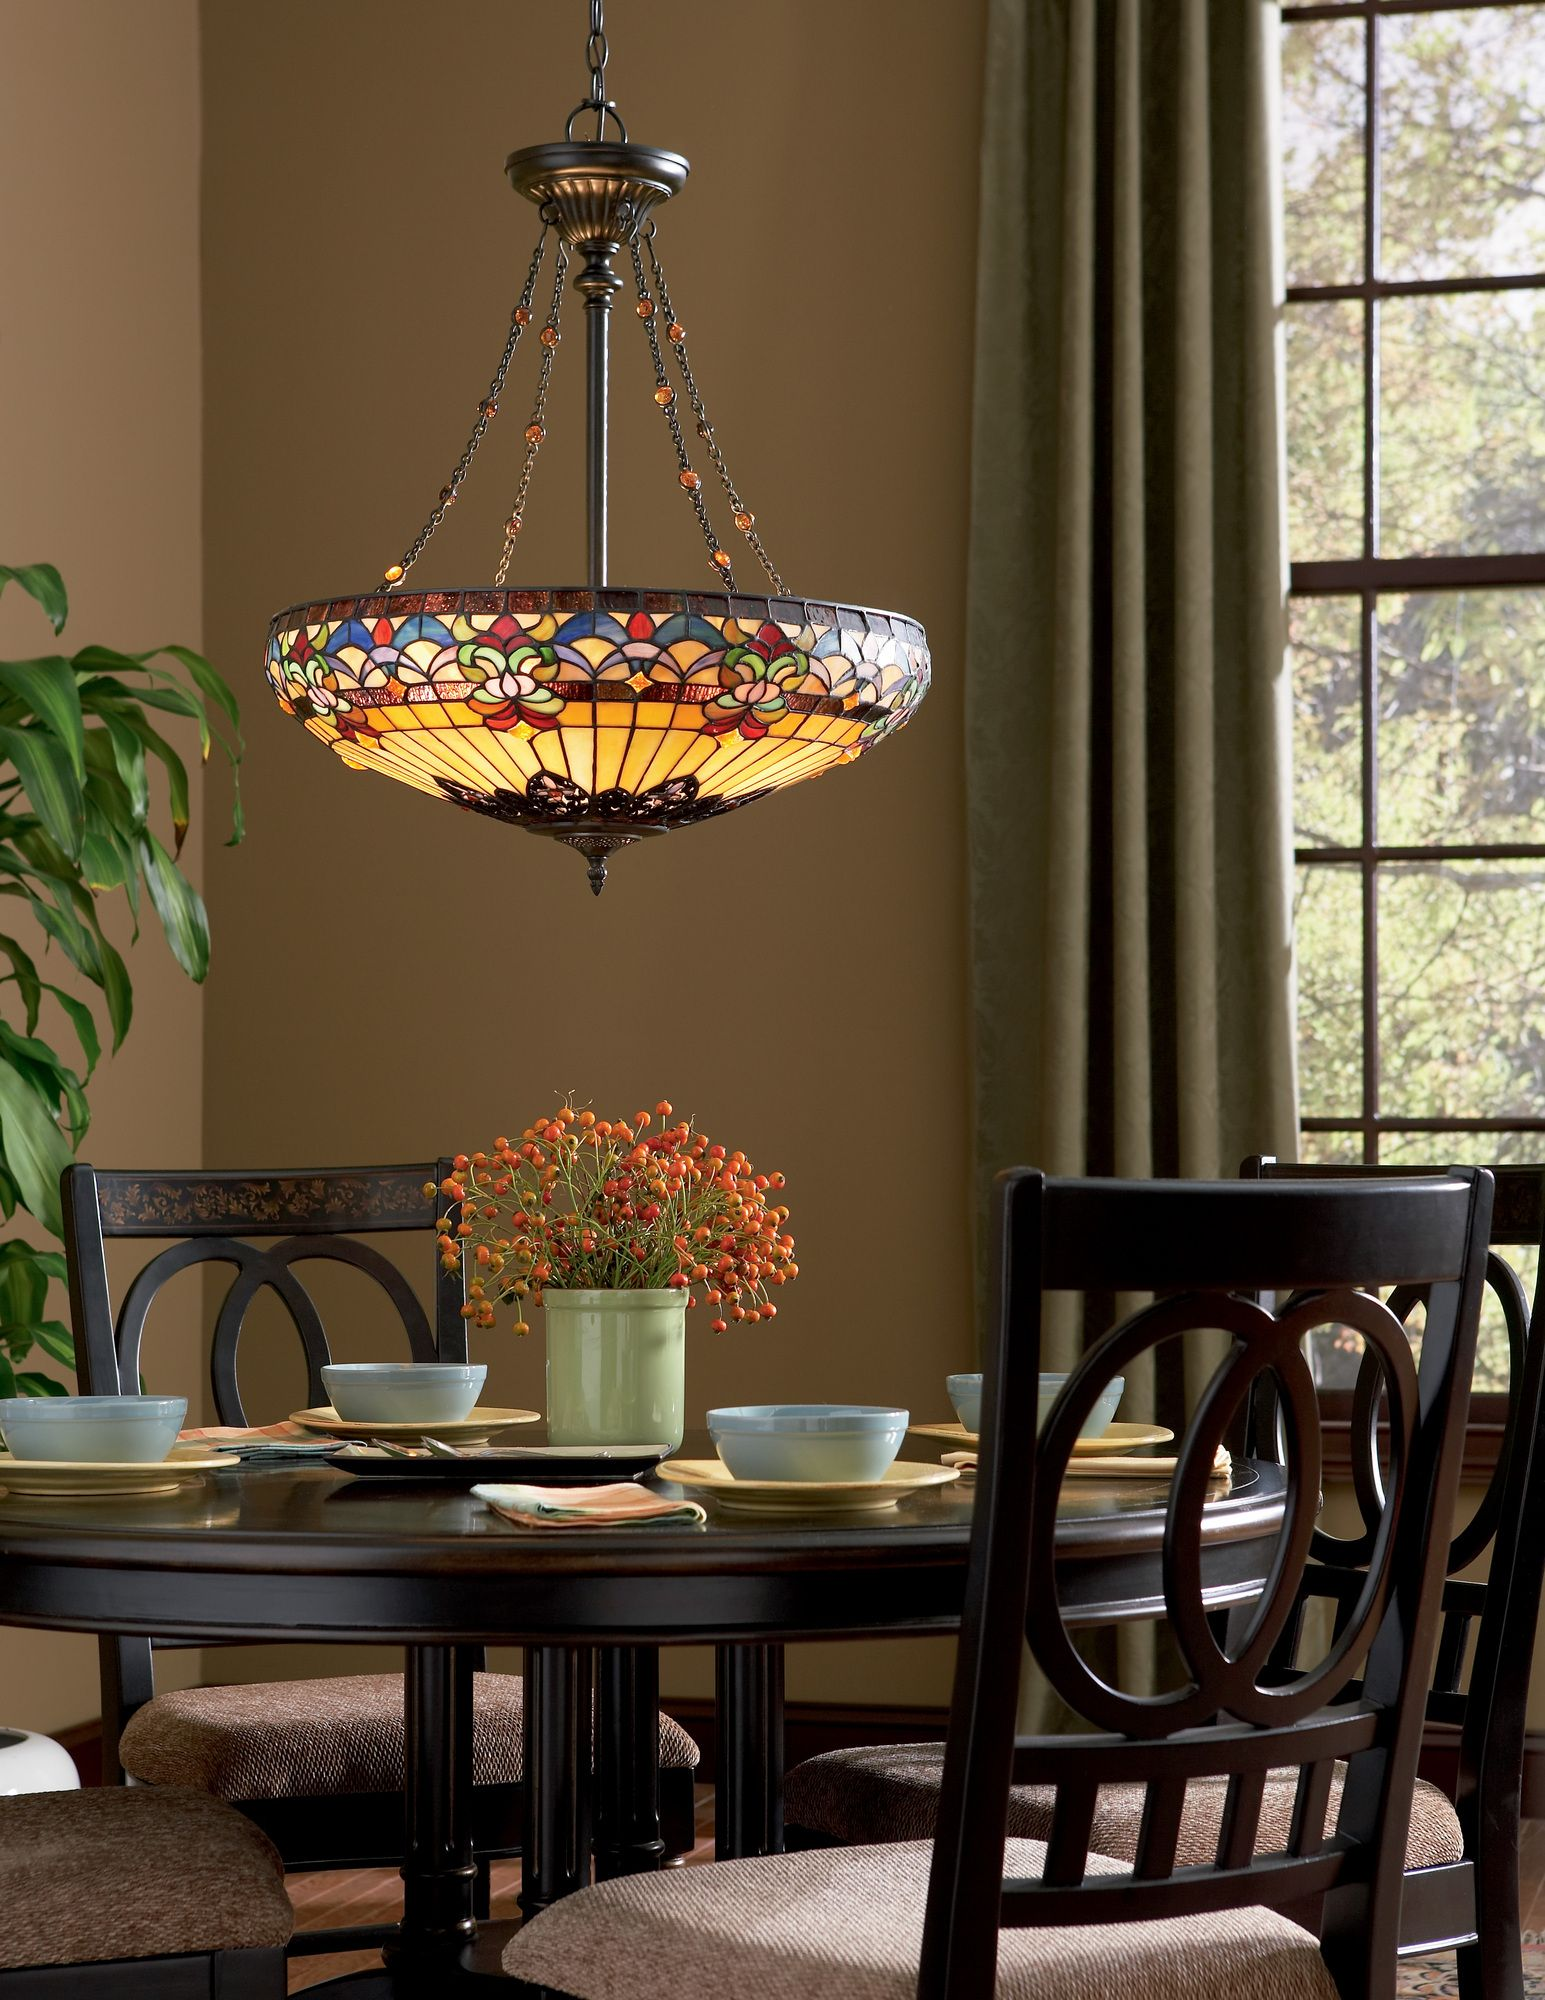 Quoizel Belle Fleur 4 Light Tiffany Inverted Pendant